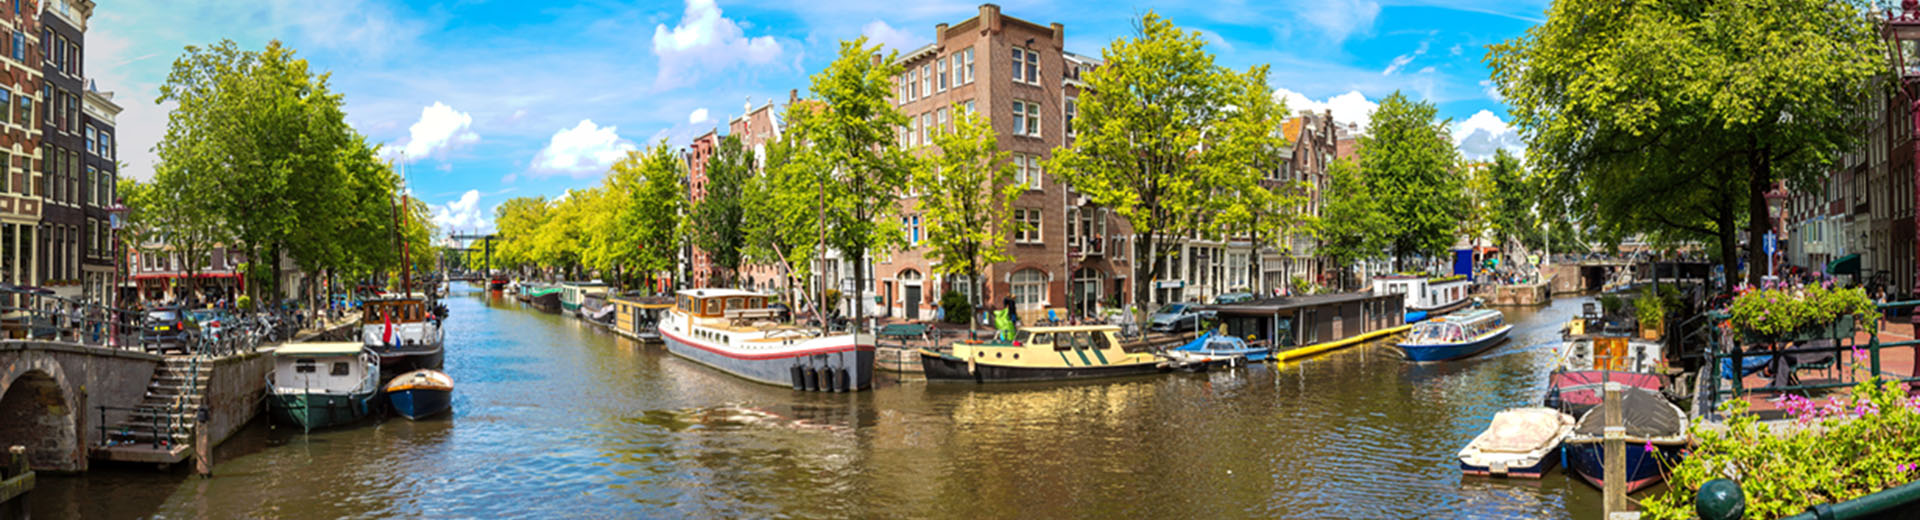 Voyages en groupe - Amsterdam